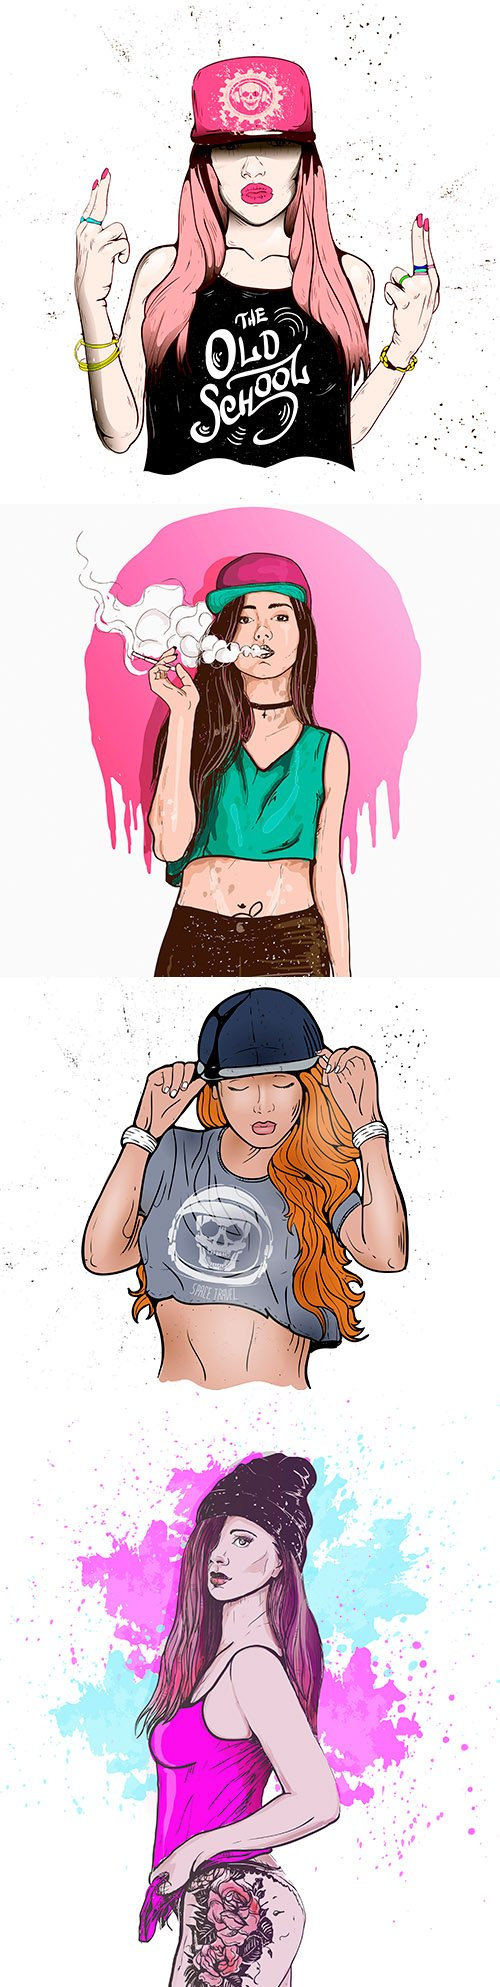 Fashion and stylish young girl in cap rap style illustrations